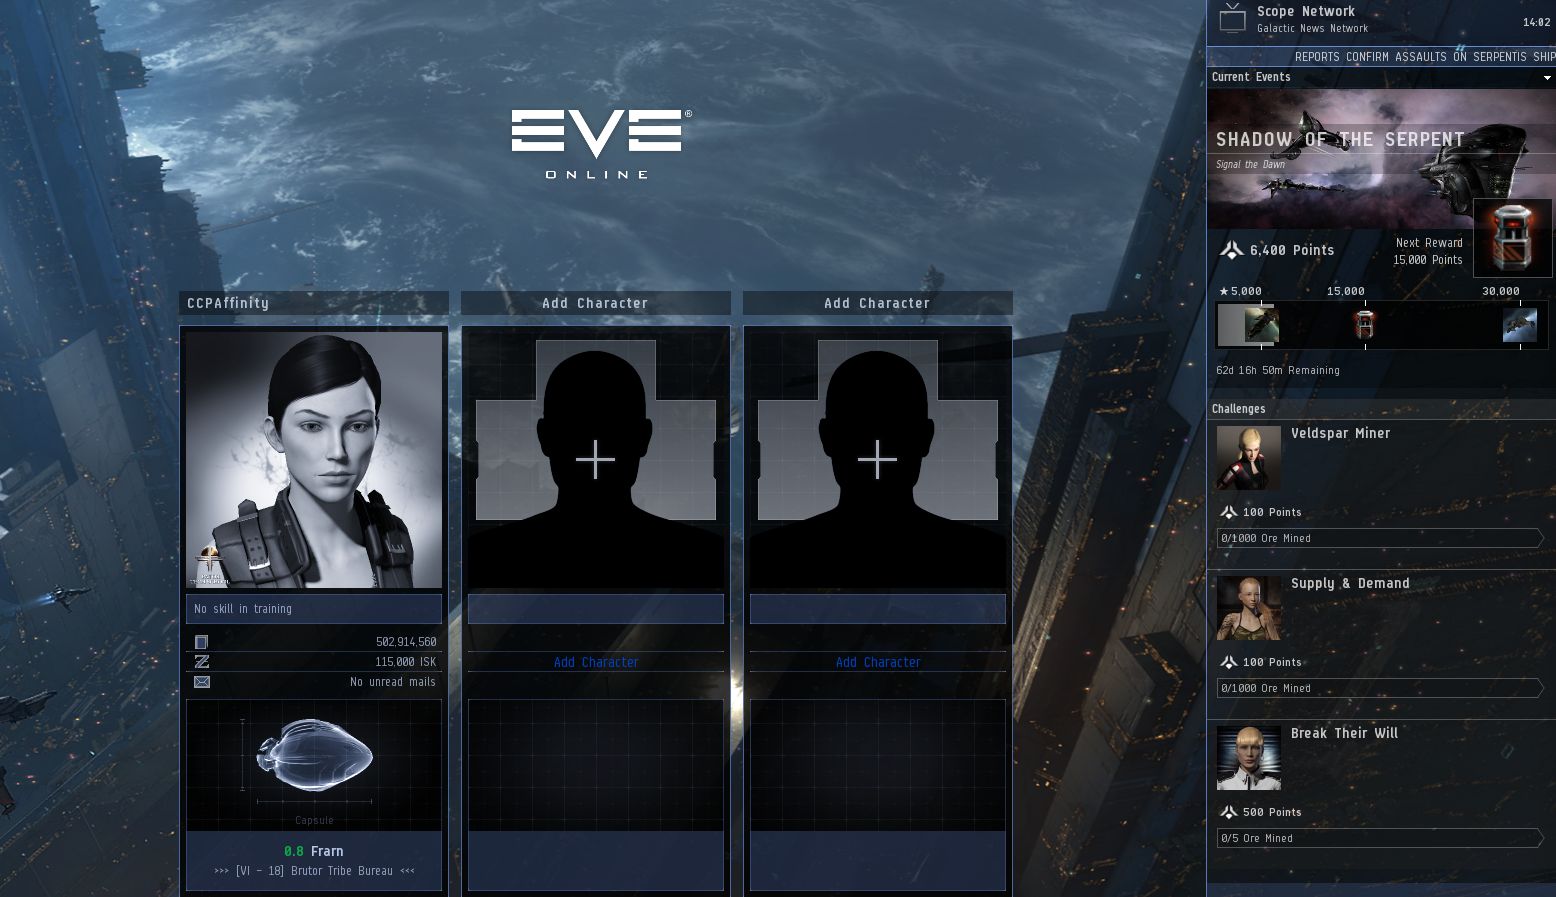 I like how the Shadow of the Serpent PvE options are served up, right on the character log-in screen. This has potential...